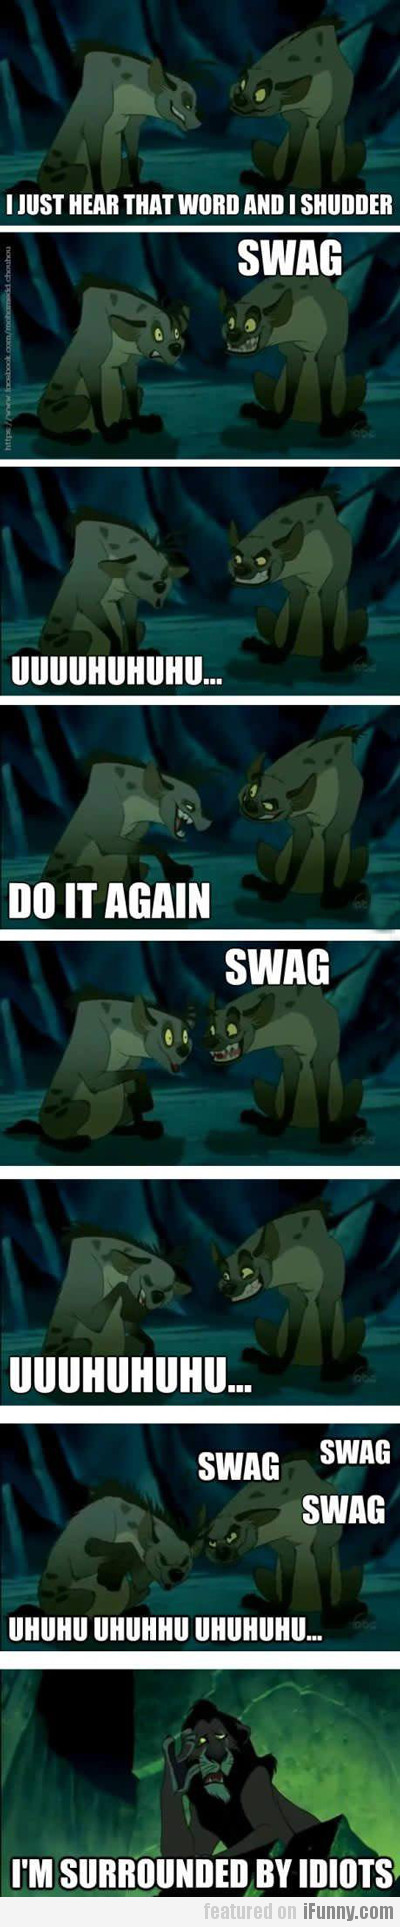 I Just Hear That Word And I Shudder, Swag